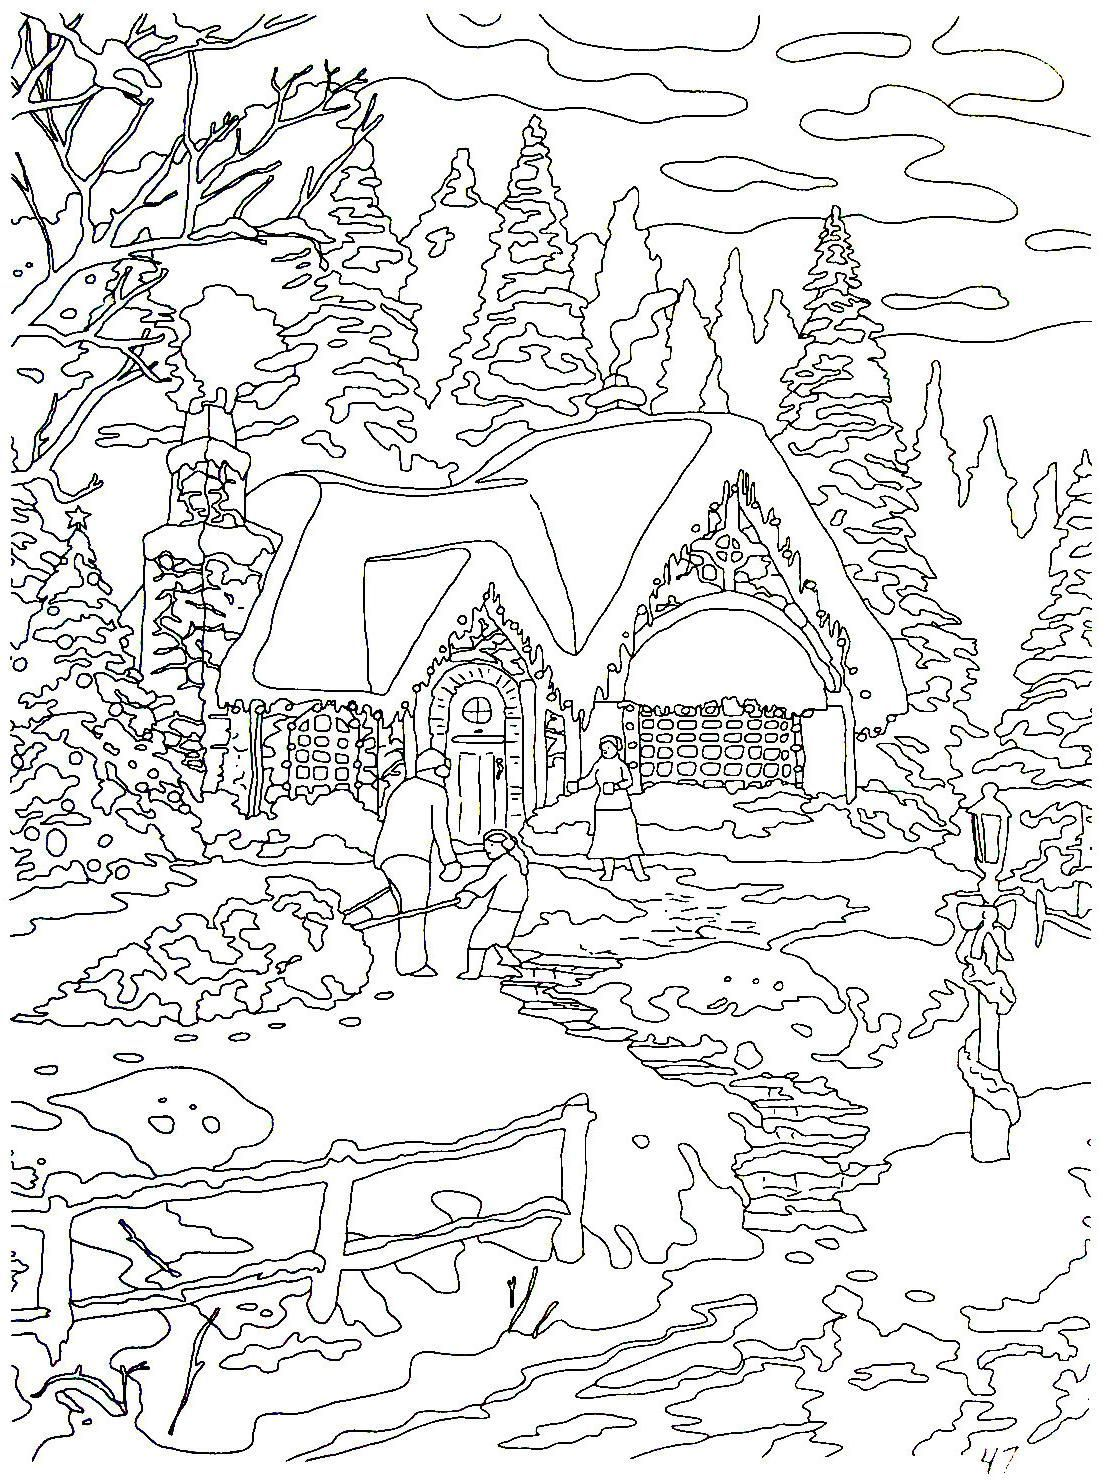 Thomas Kinkade Coloring Book Best Of Country Christmas Home Ing Thomas Kinkade Painting Coloring Book Coloring Books Coloring Pages Christmas Coloring Pages